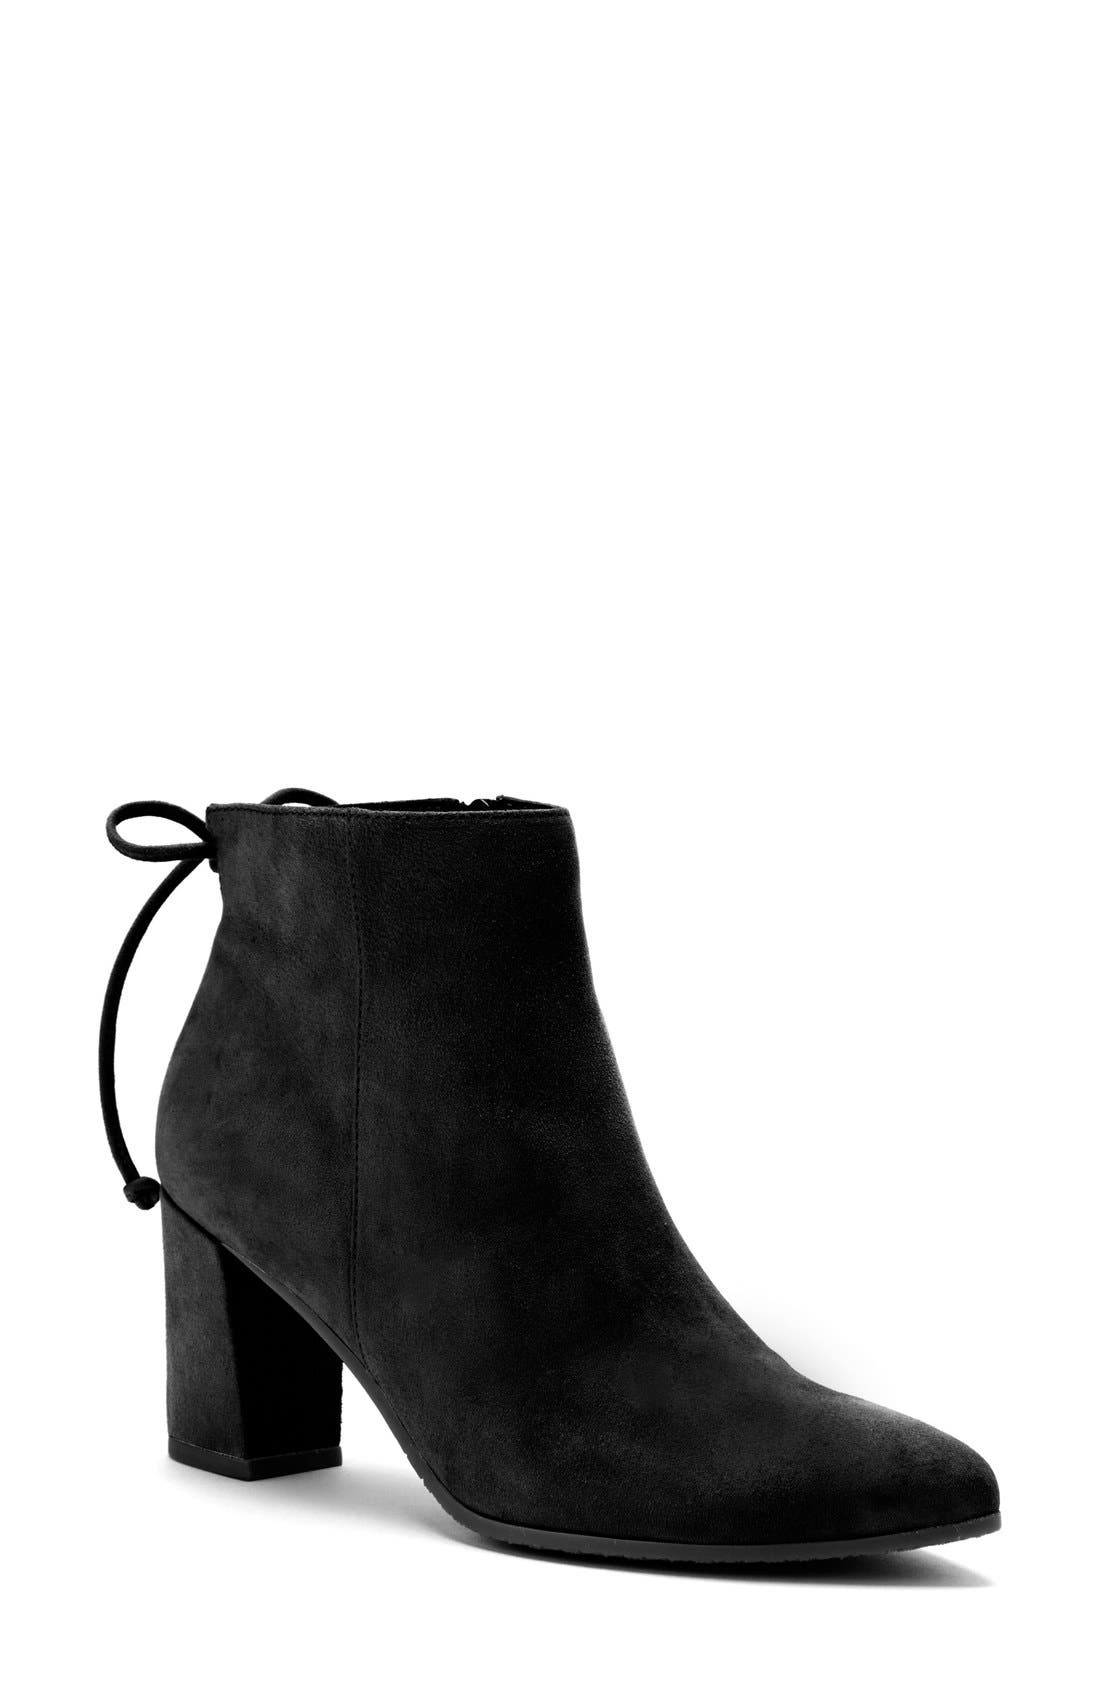 Tiana Waterproof Pointy Toe Bootie,                             Main thumbnail 1, color,